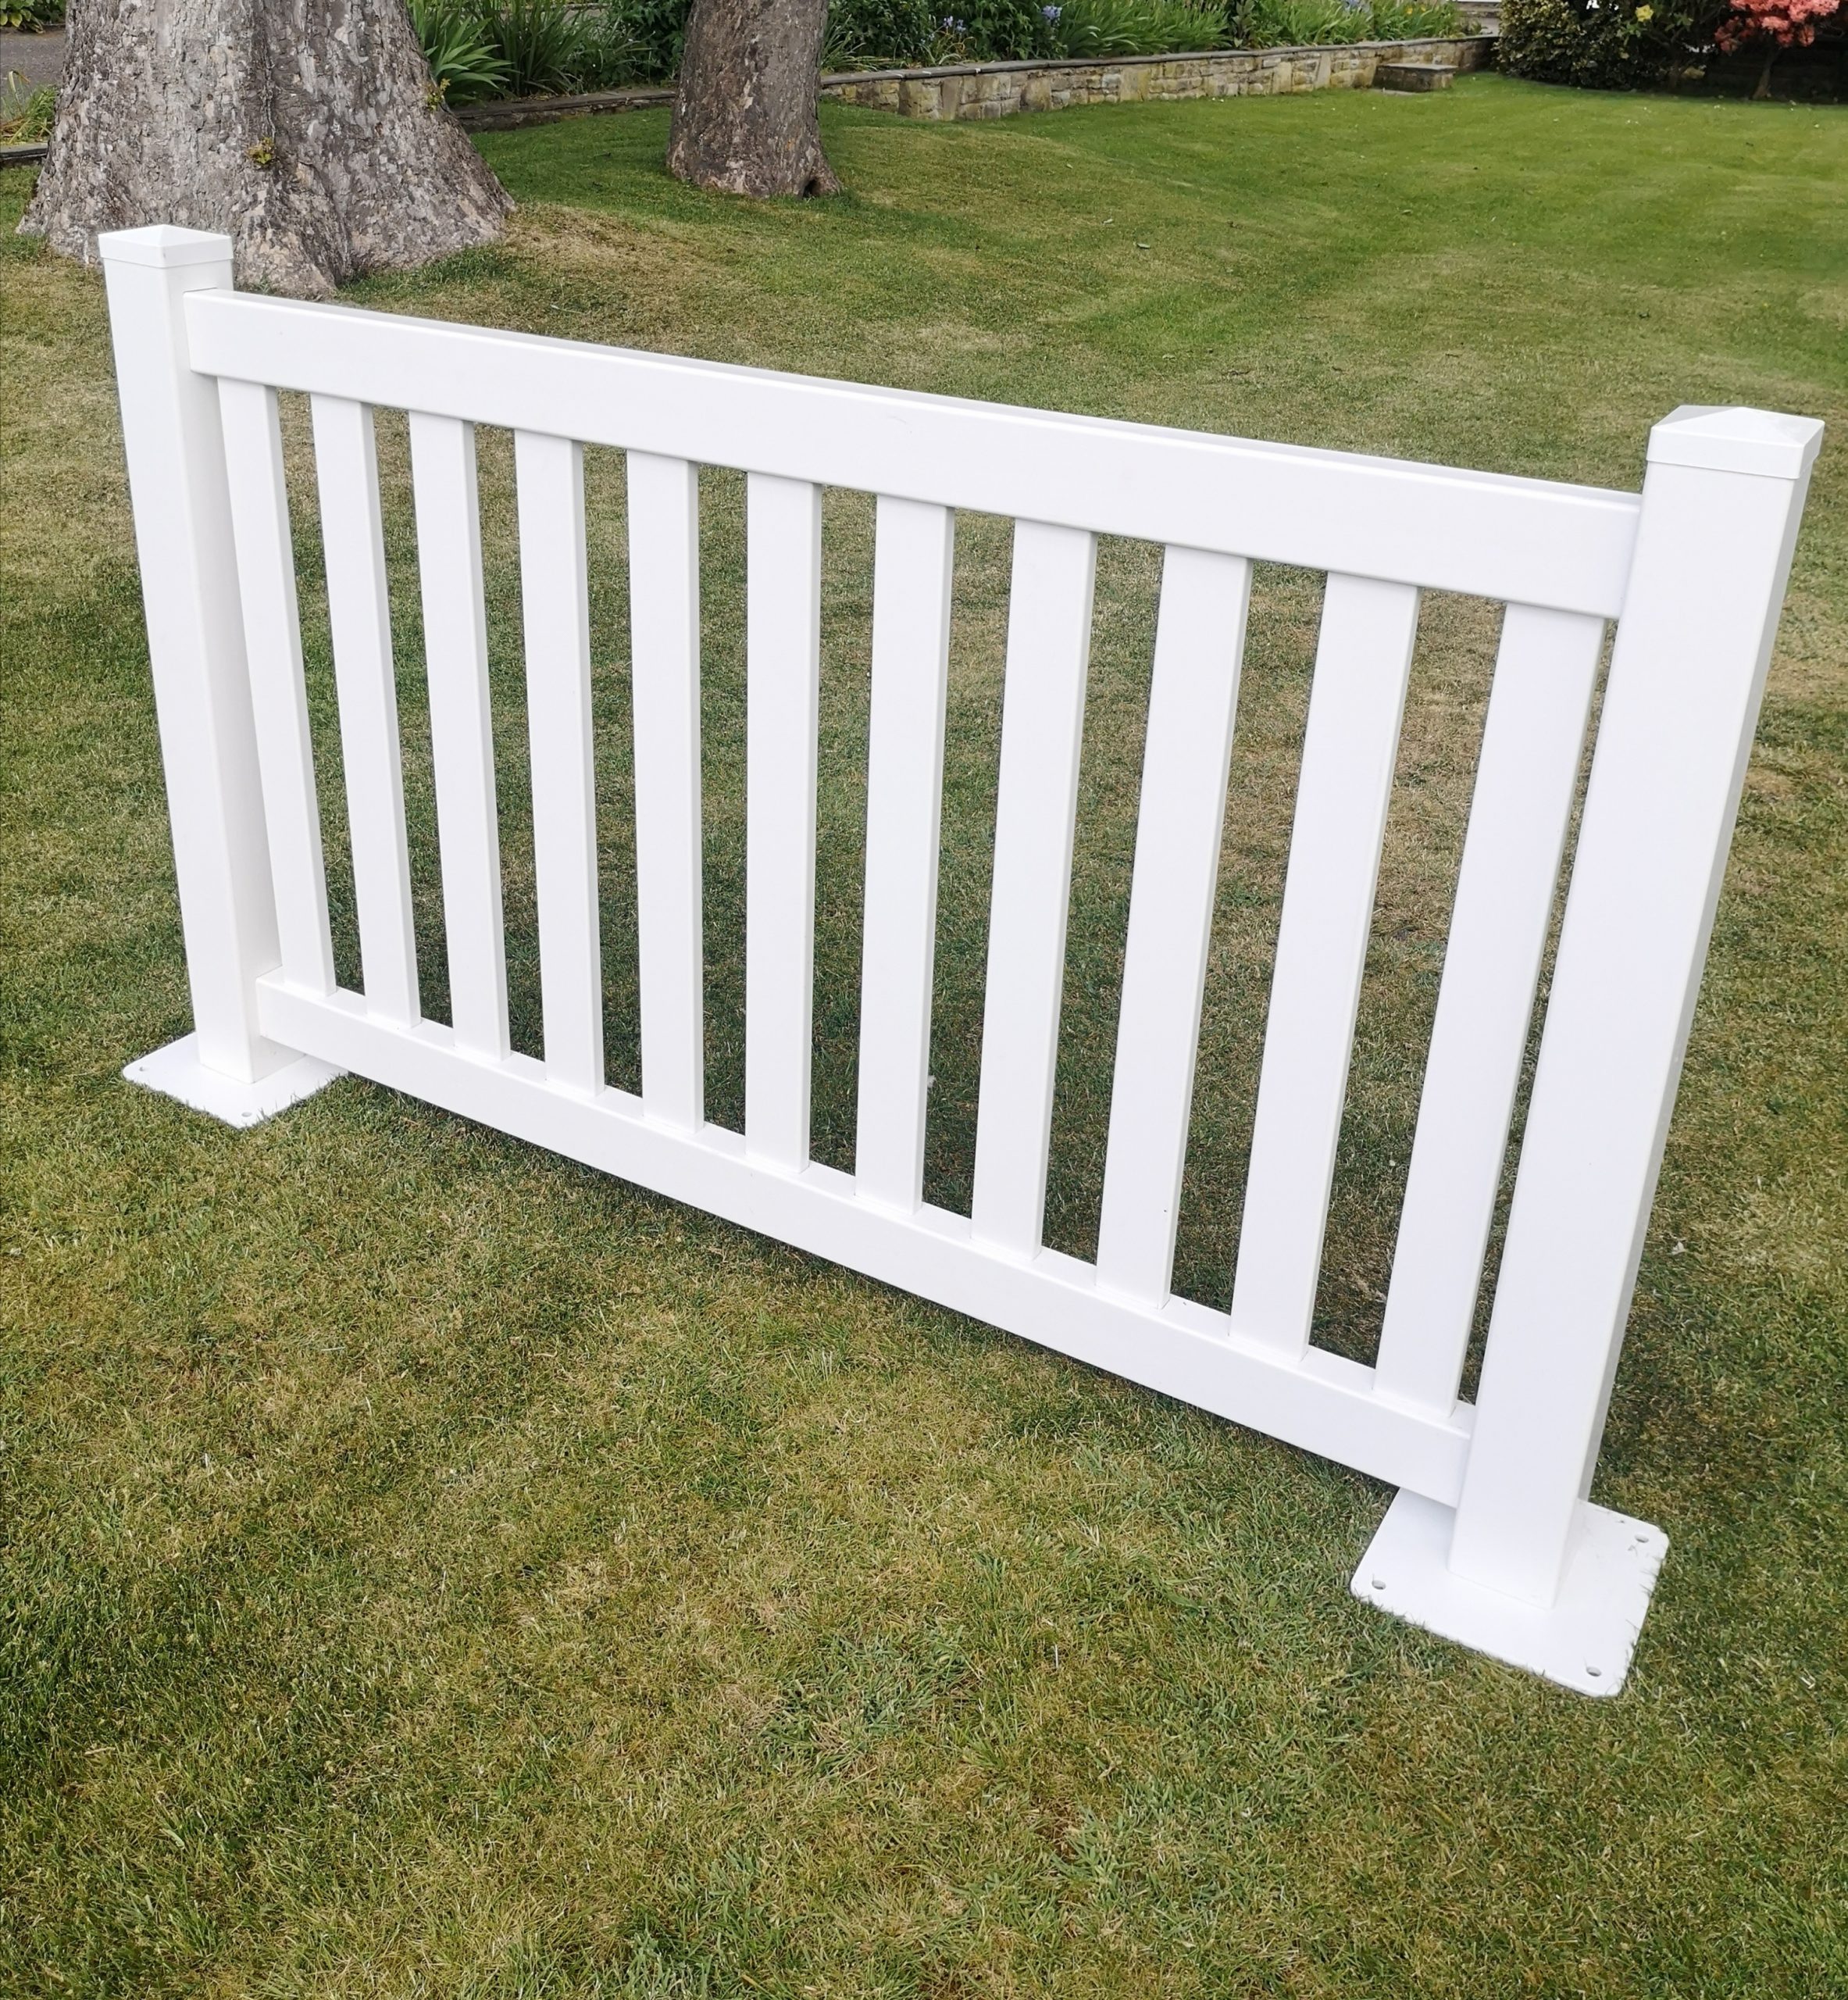 Portable Flat Top Picket Fencing